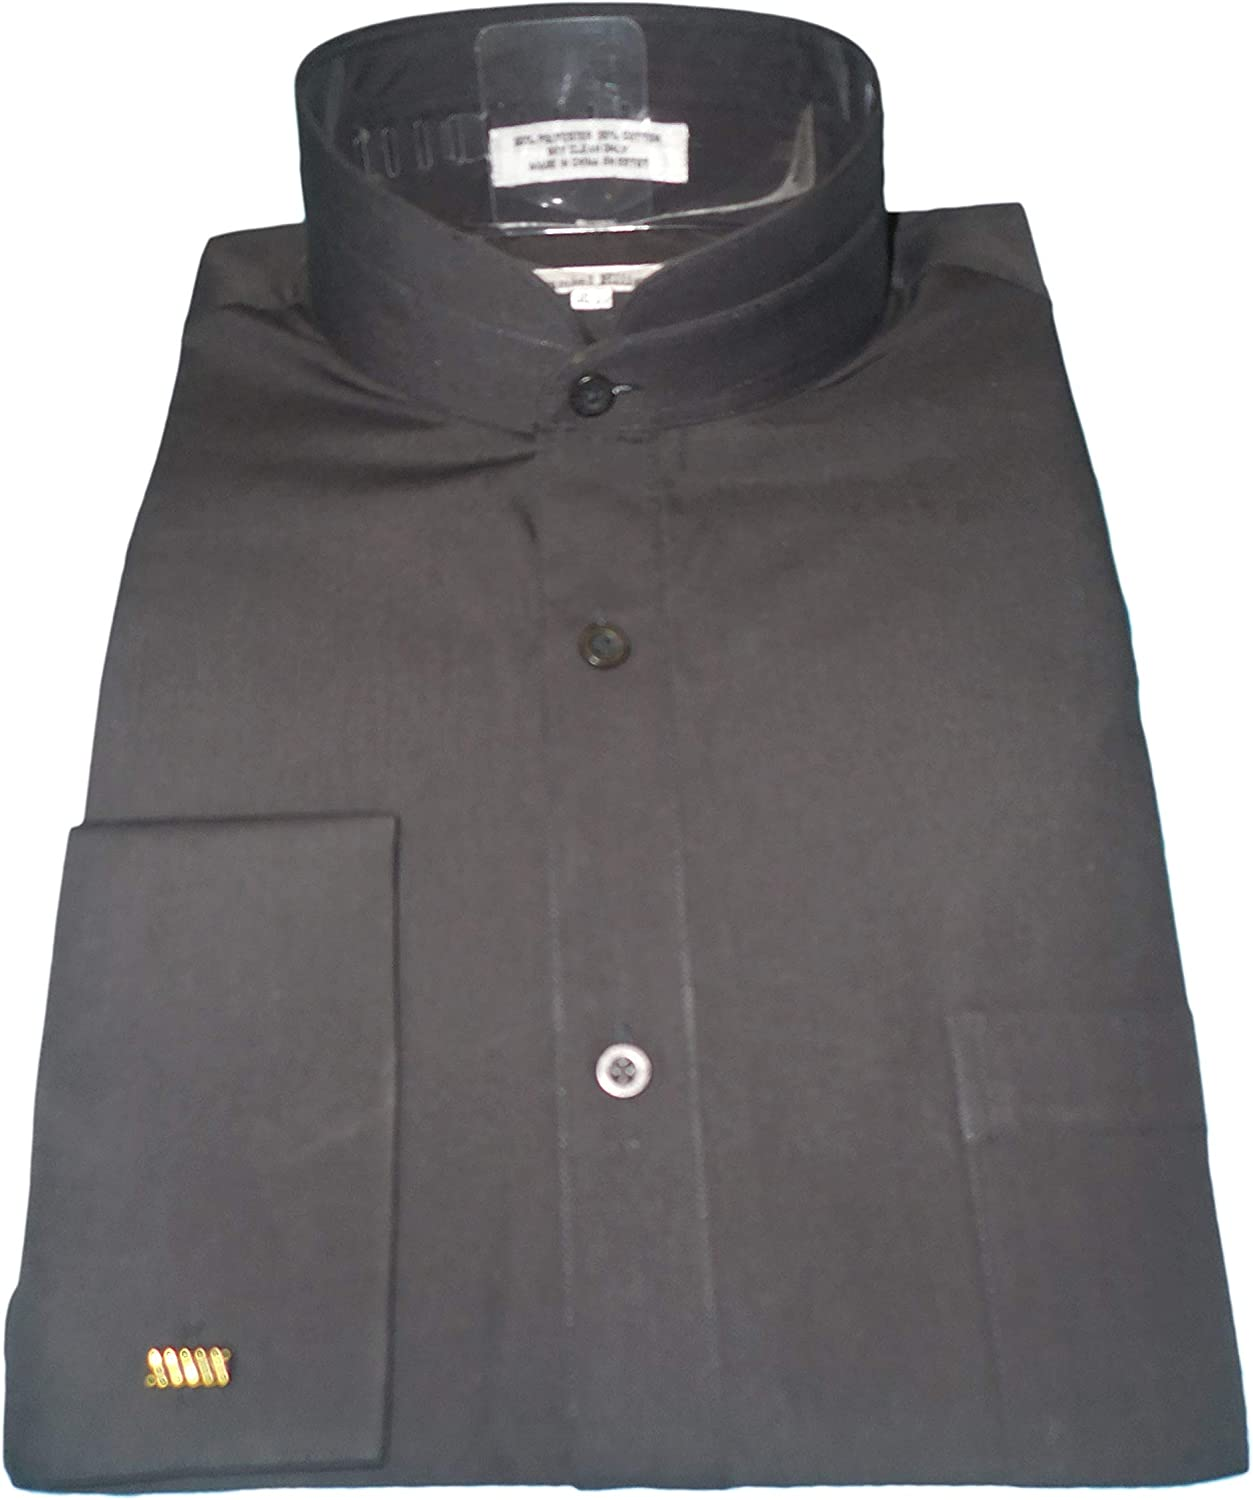 Men/'s Solid Banded Collar French Cuff Dress Shirt Solid Color